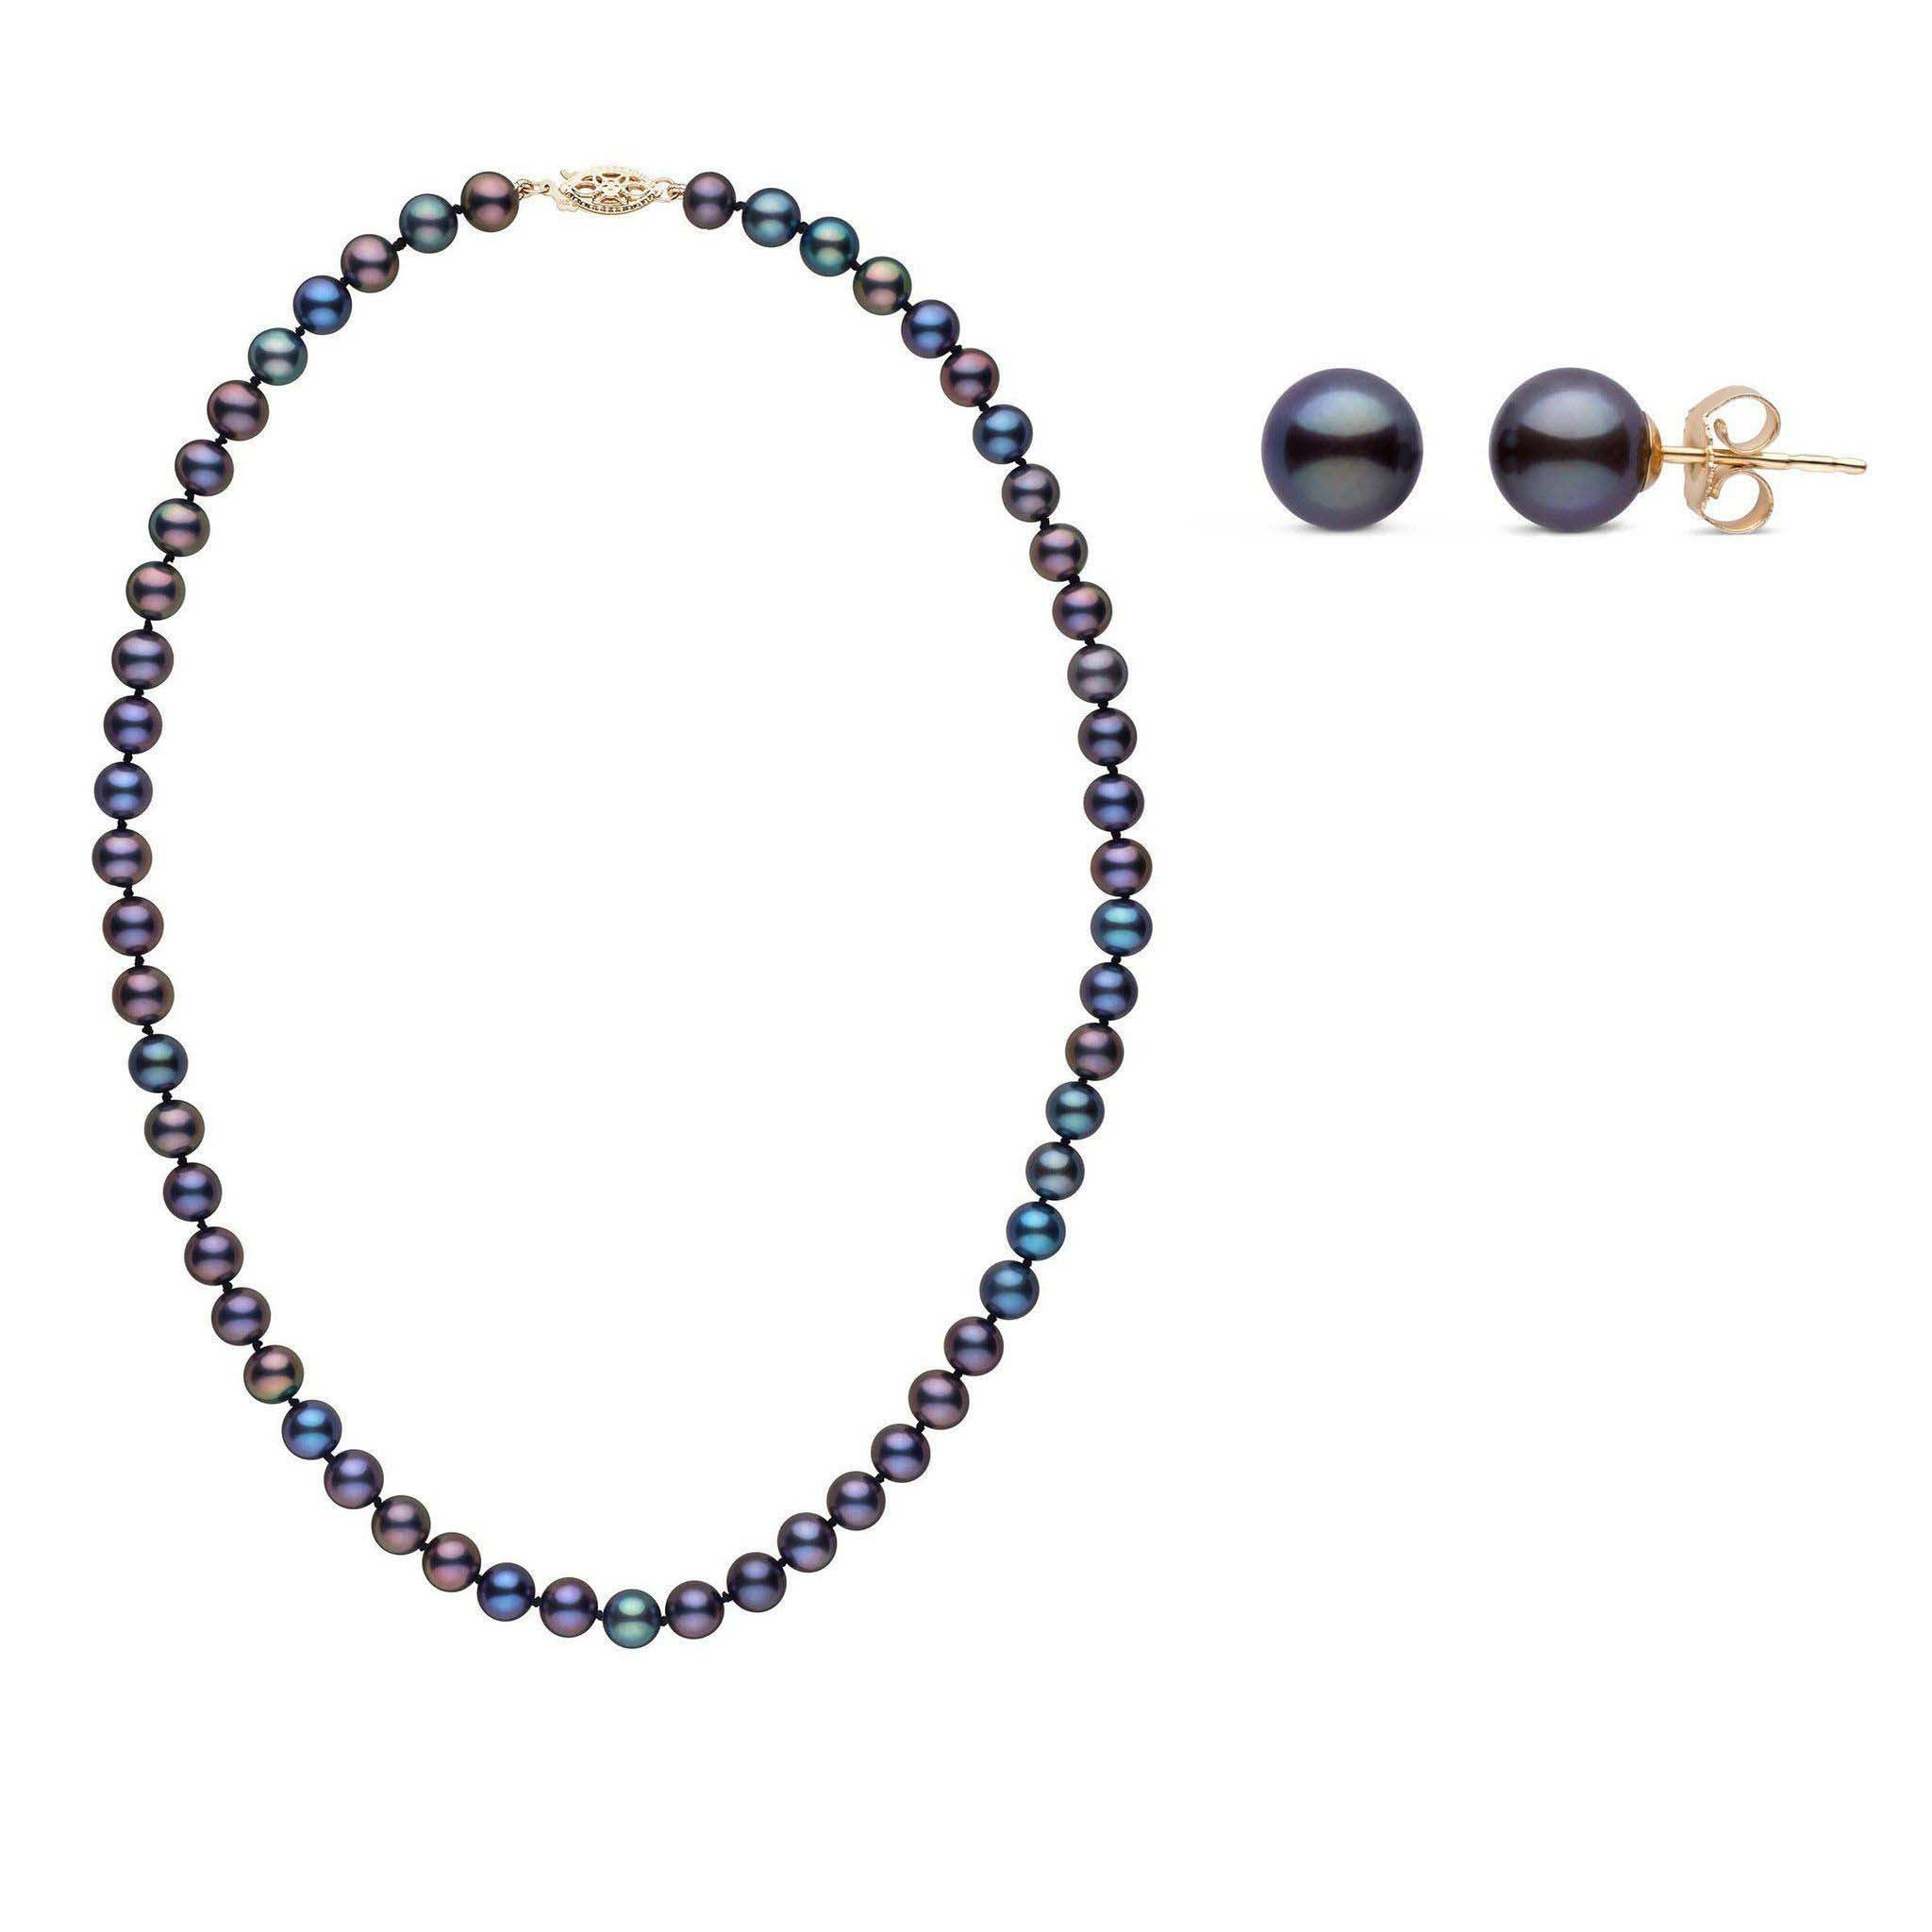 6.5-7.0 mm AAA Black Freshwater Pearls 16 Inch Necklace and Stud Earrings 2 Piece Set